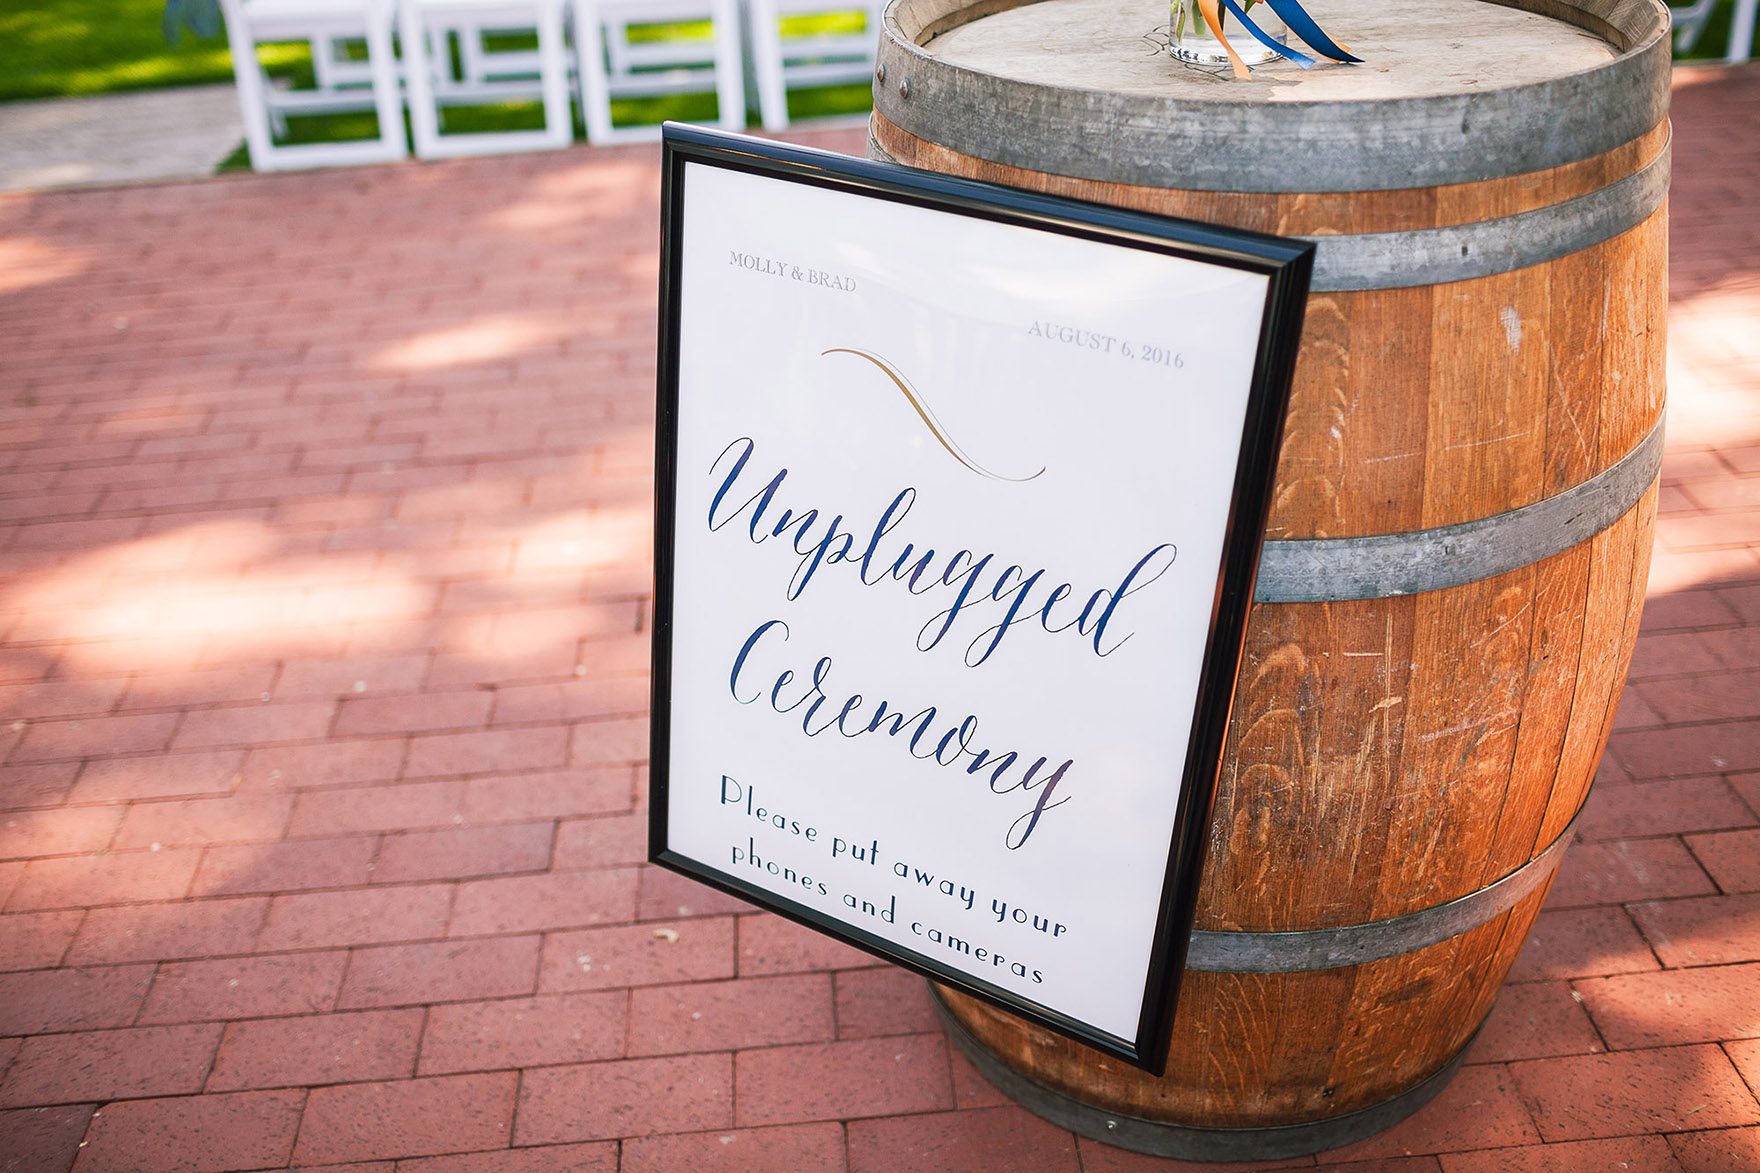 unplugged wedding signage sign asks guests no cellphones please enjoy the ceremony posted on the wine barrel on the bricks down the aisle at the pasatiempo golf course at the bride and groom newlywed hollins house wedding the perfect santa cruz wedding venue